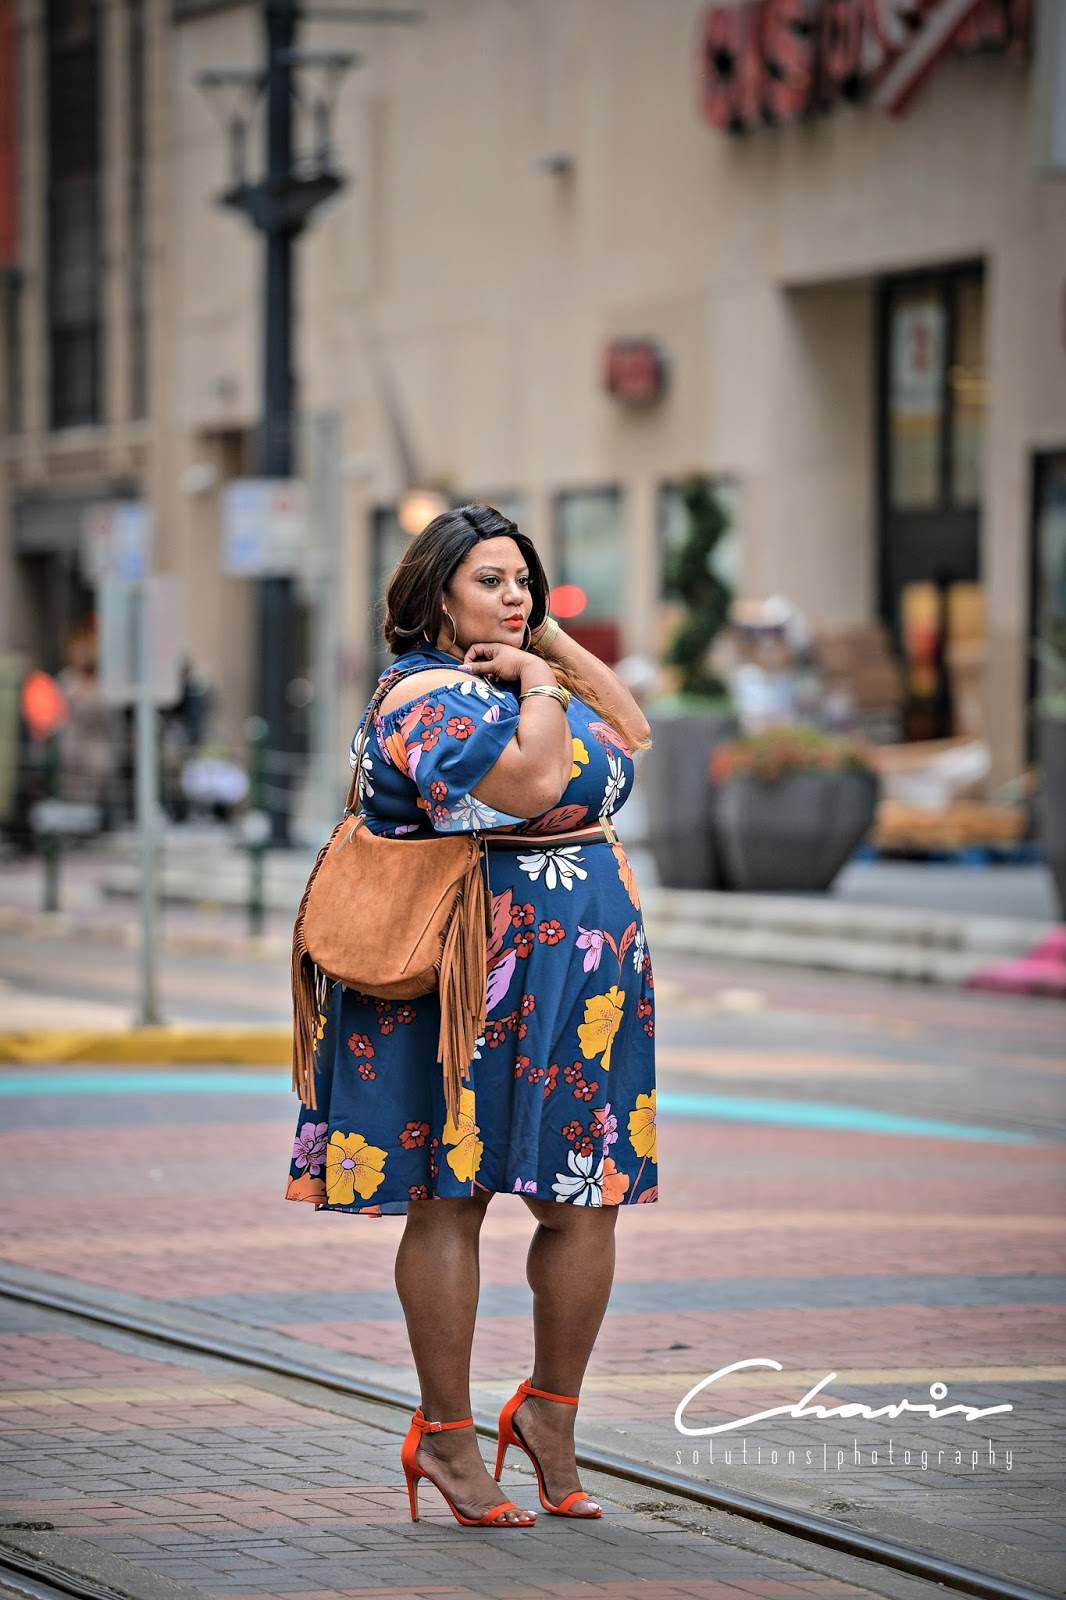 ShaKera of The Real Sample Size, plus size blogger